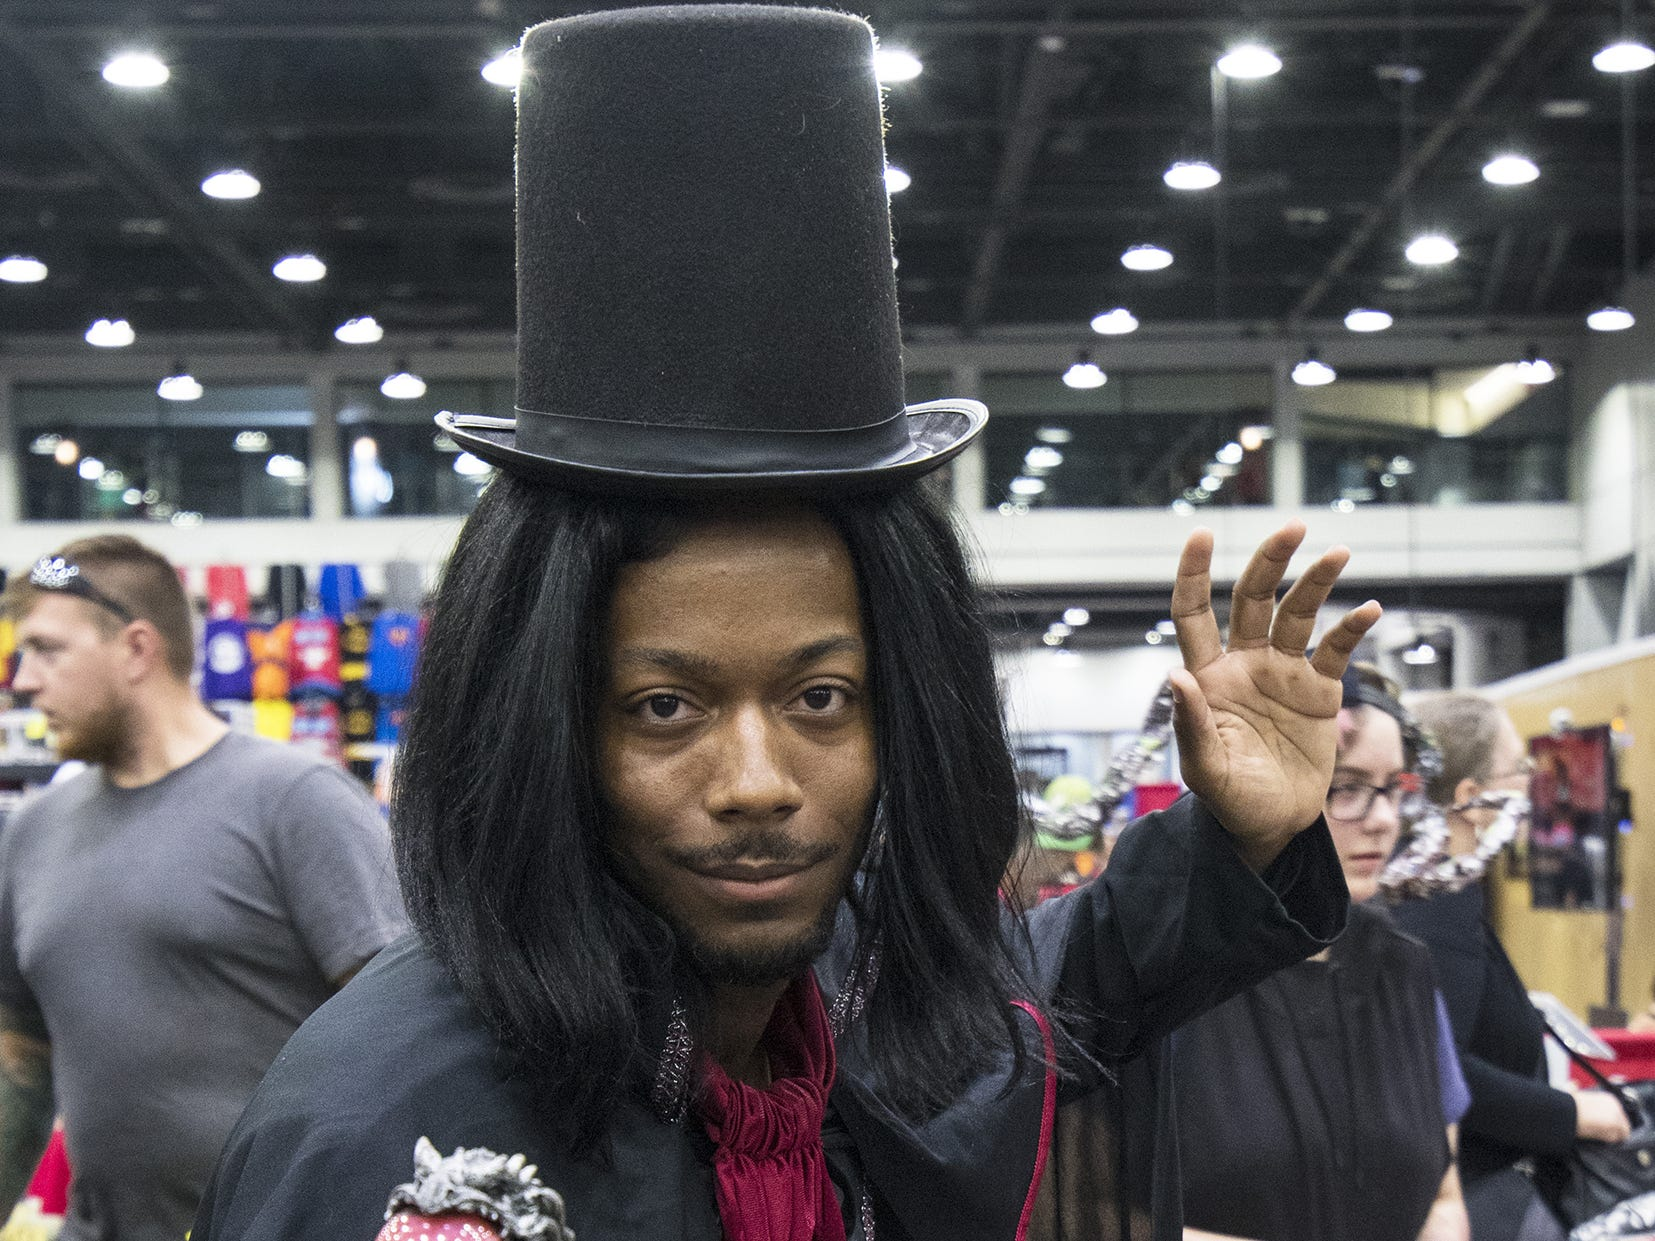 LaRon Williams of Loveland attends the Cincinnati Comic Expo.